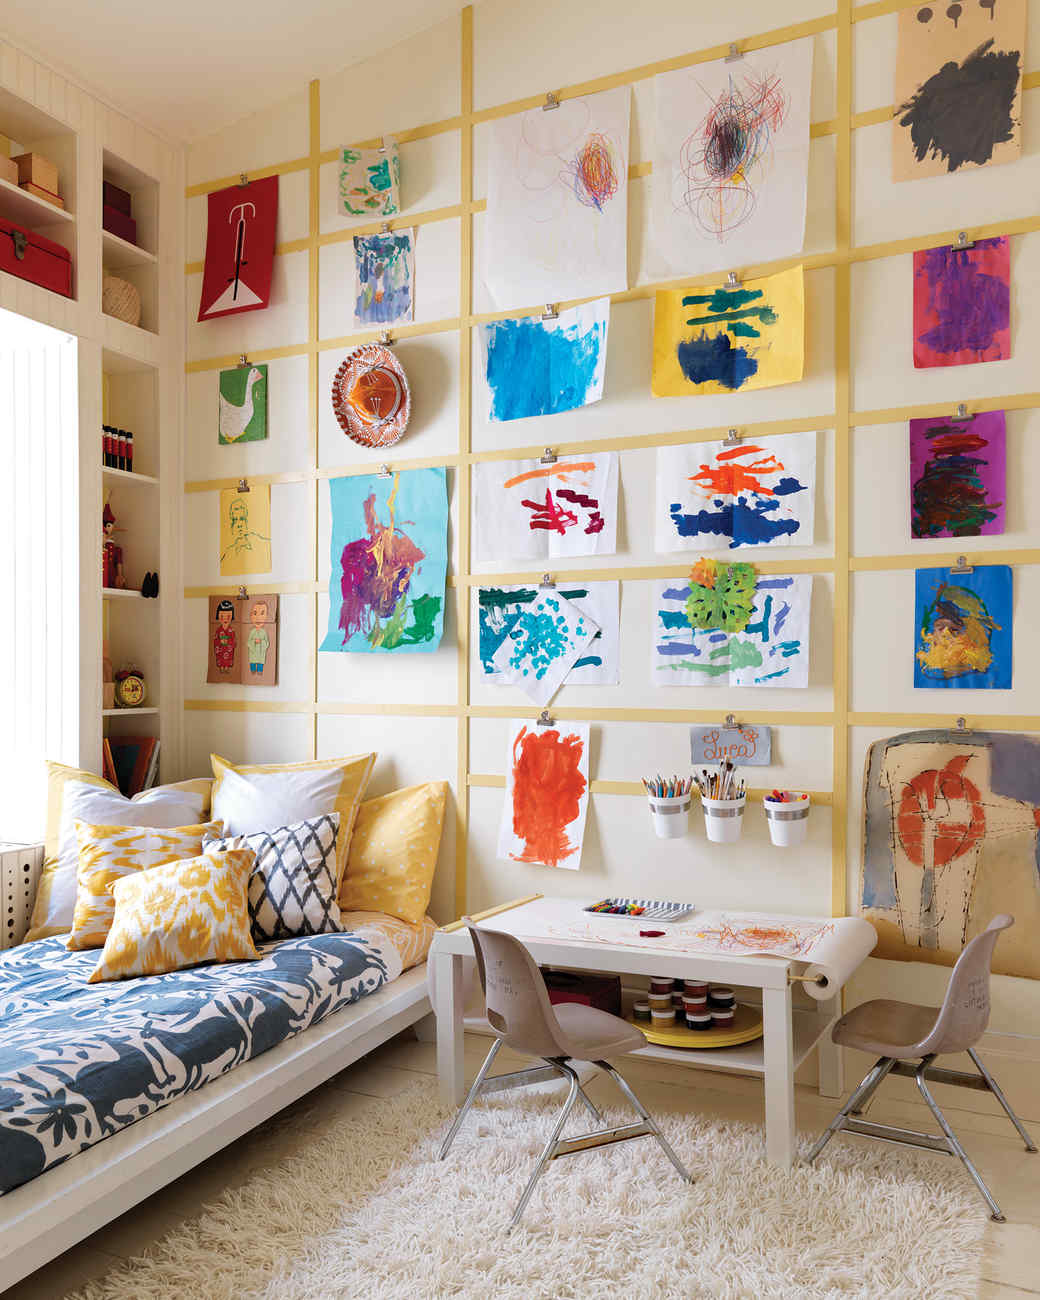 Decorating Kids Spaces Martha Stewart - Space kids room